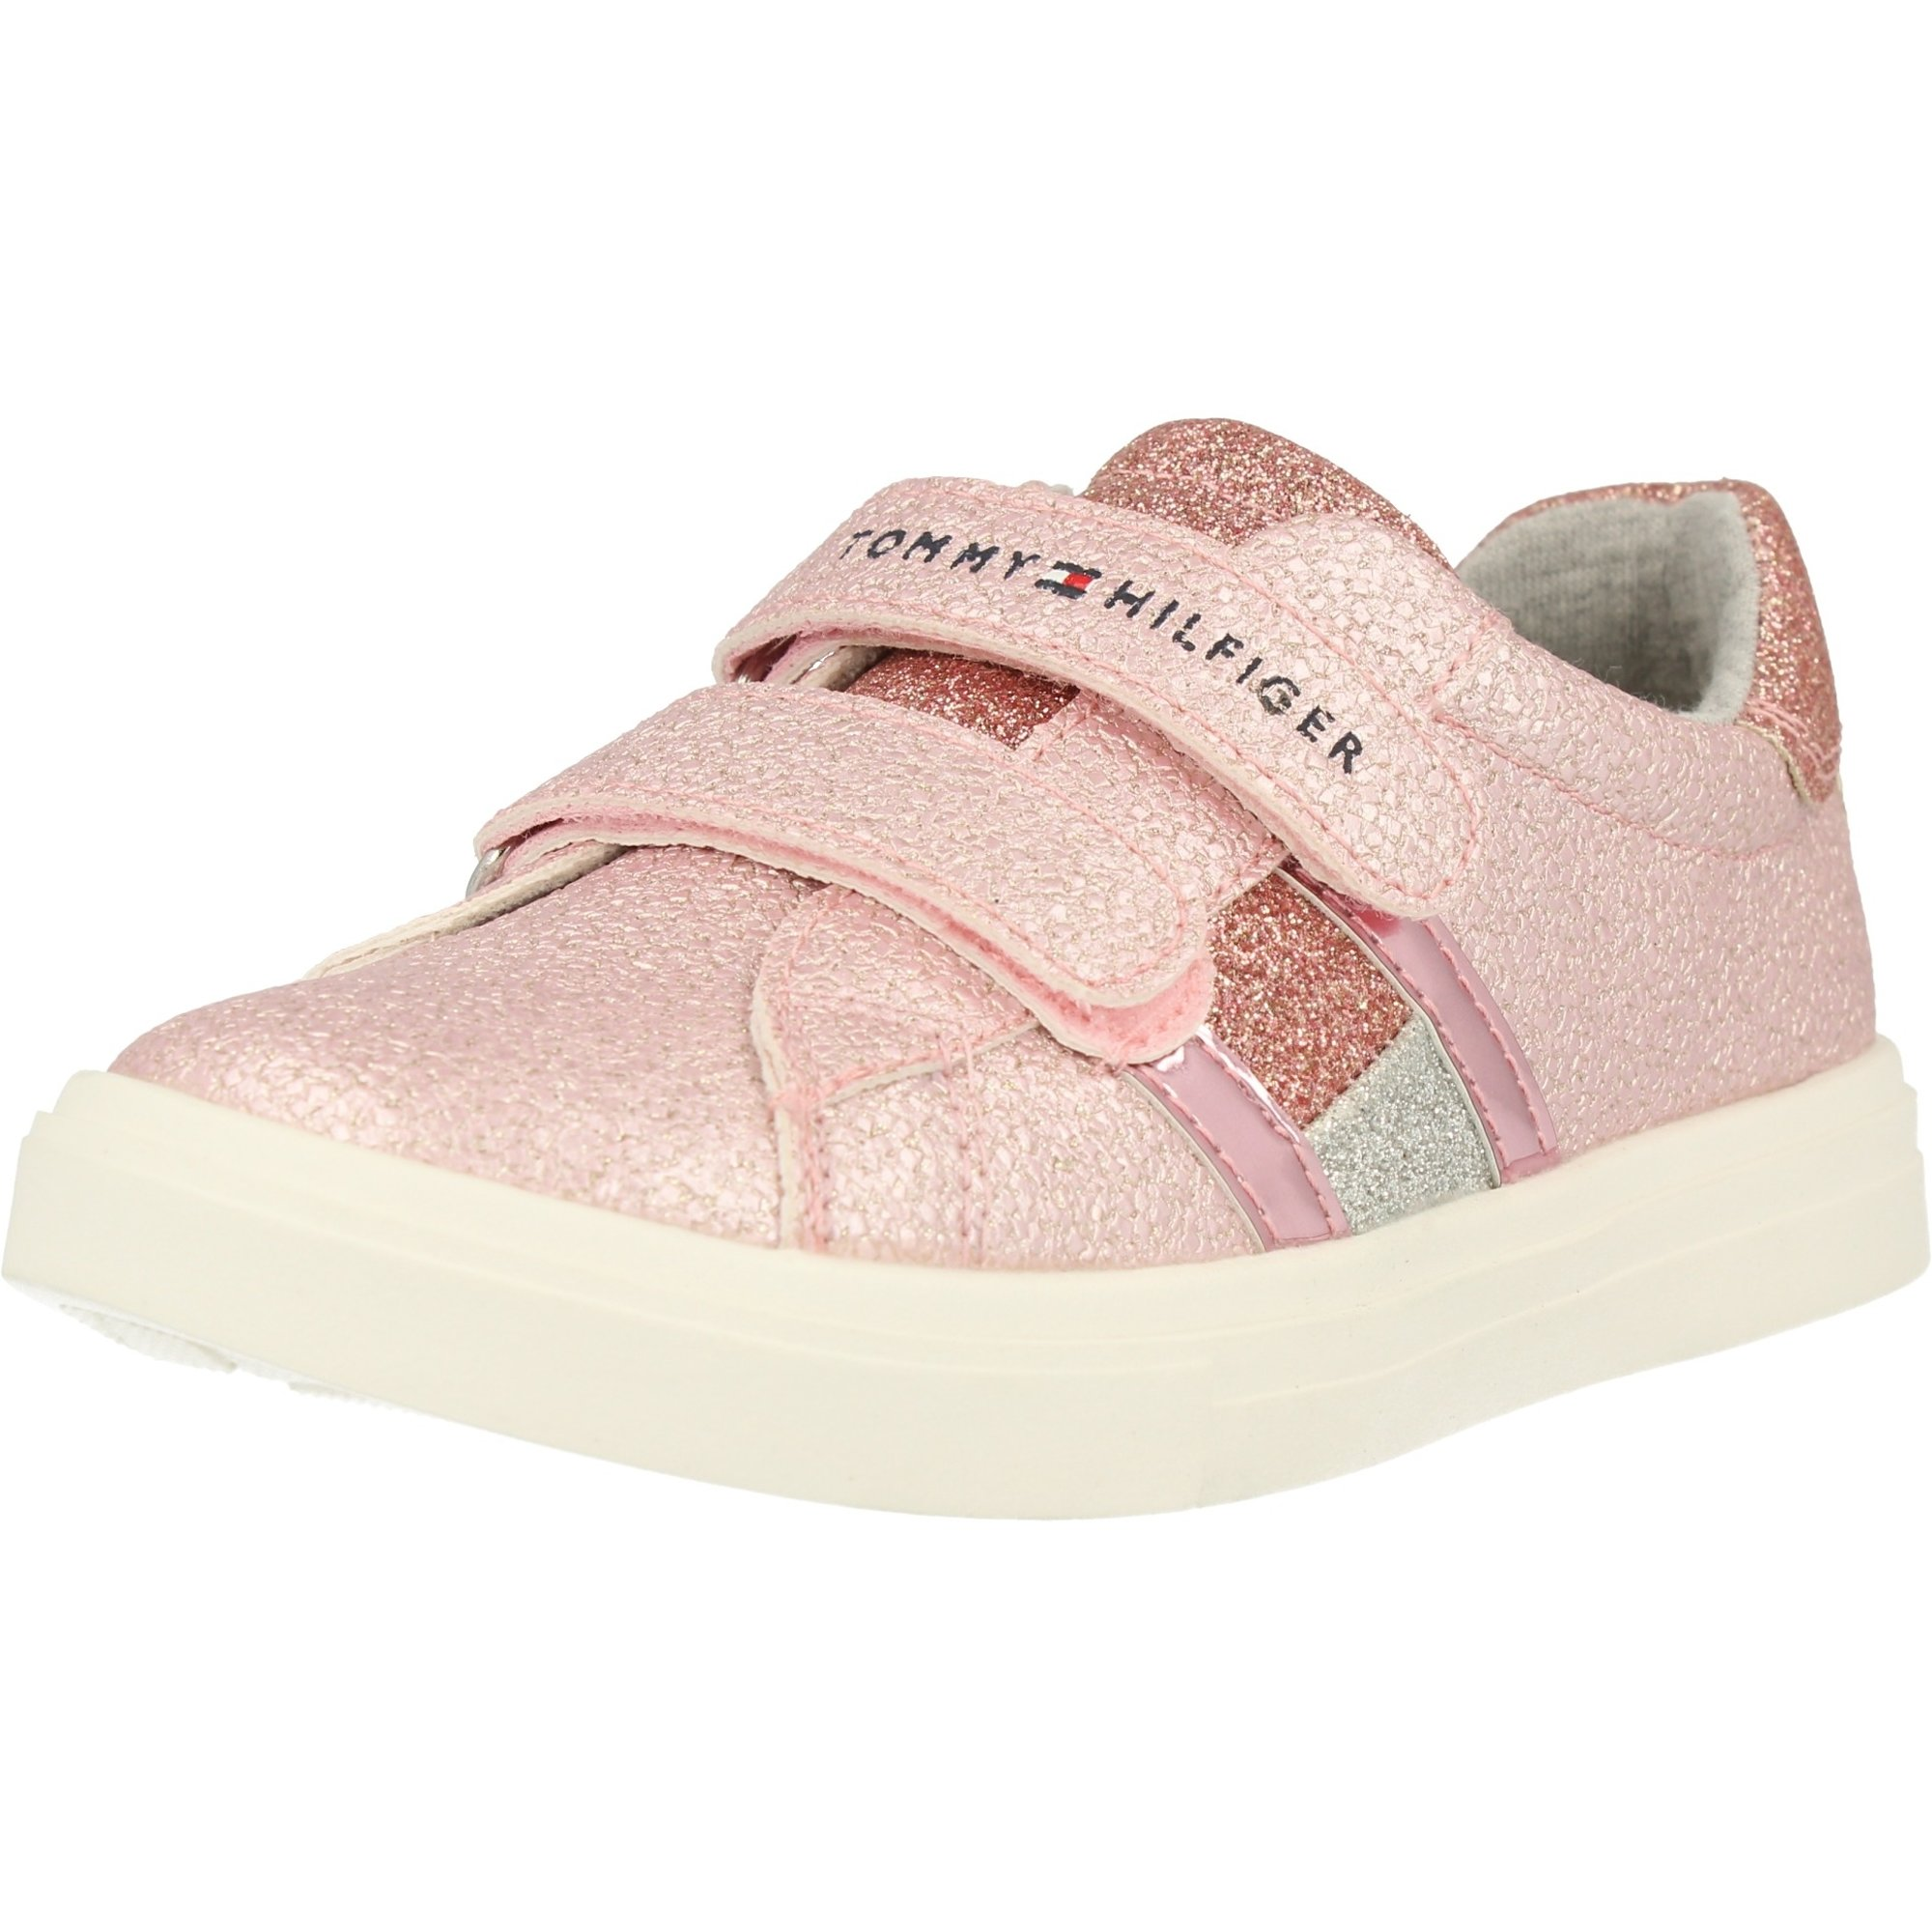 Tommy Hilfiger Trainer Pink Eco Leather